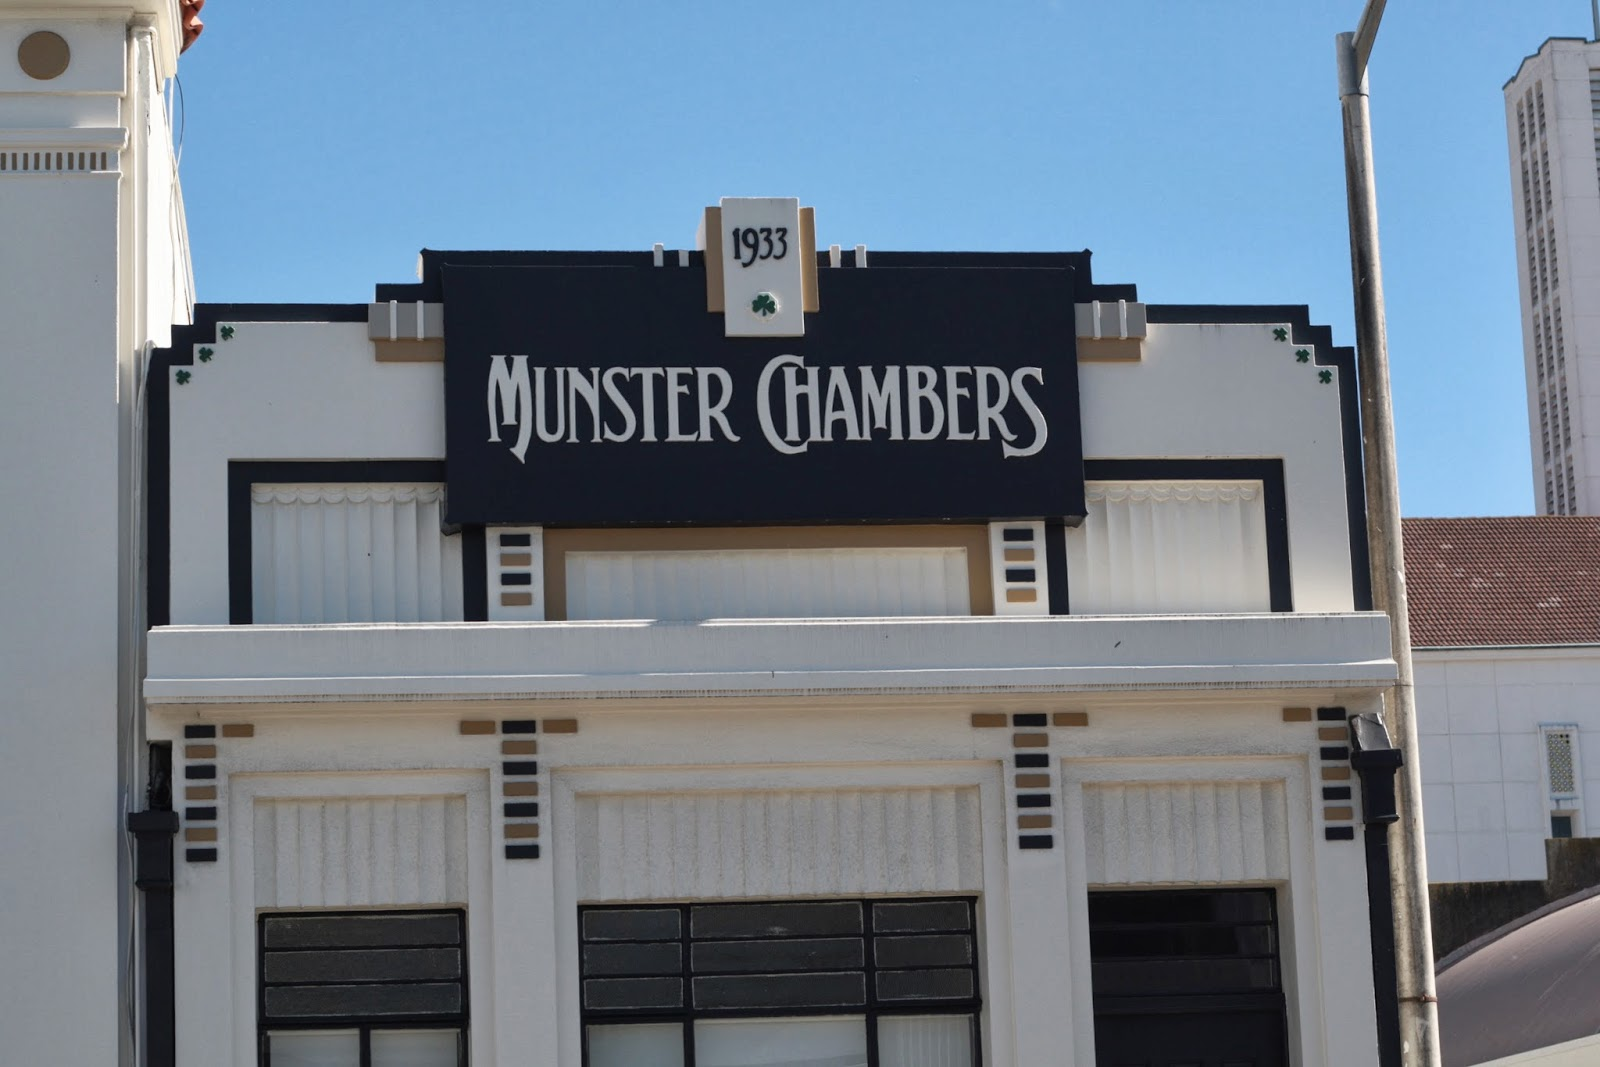 Munster Chambers art deco office Napier New Zealand.